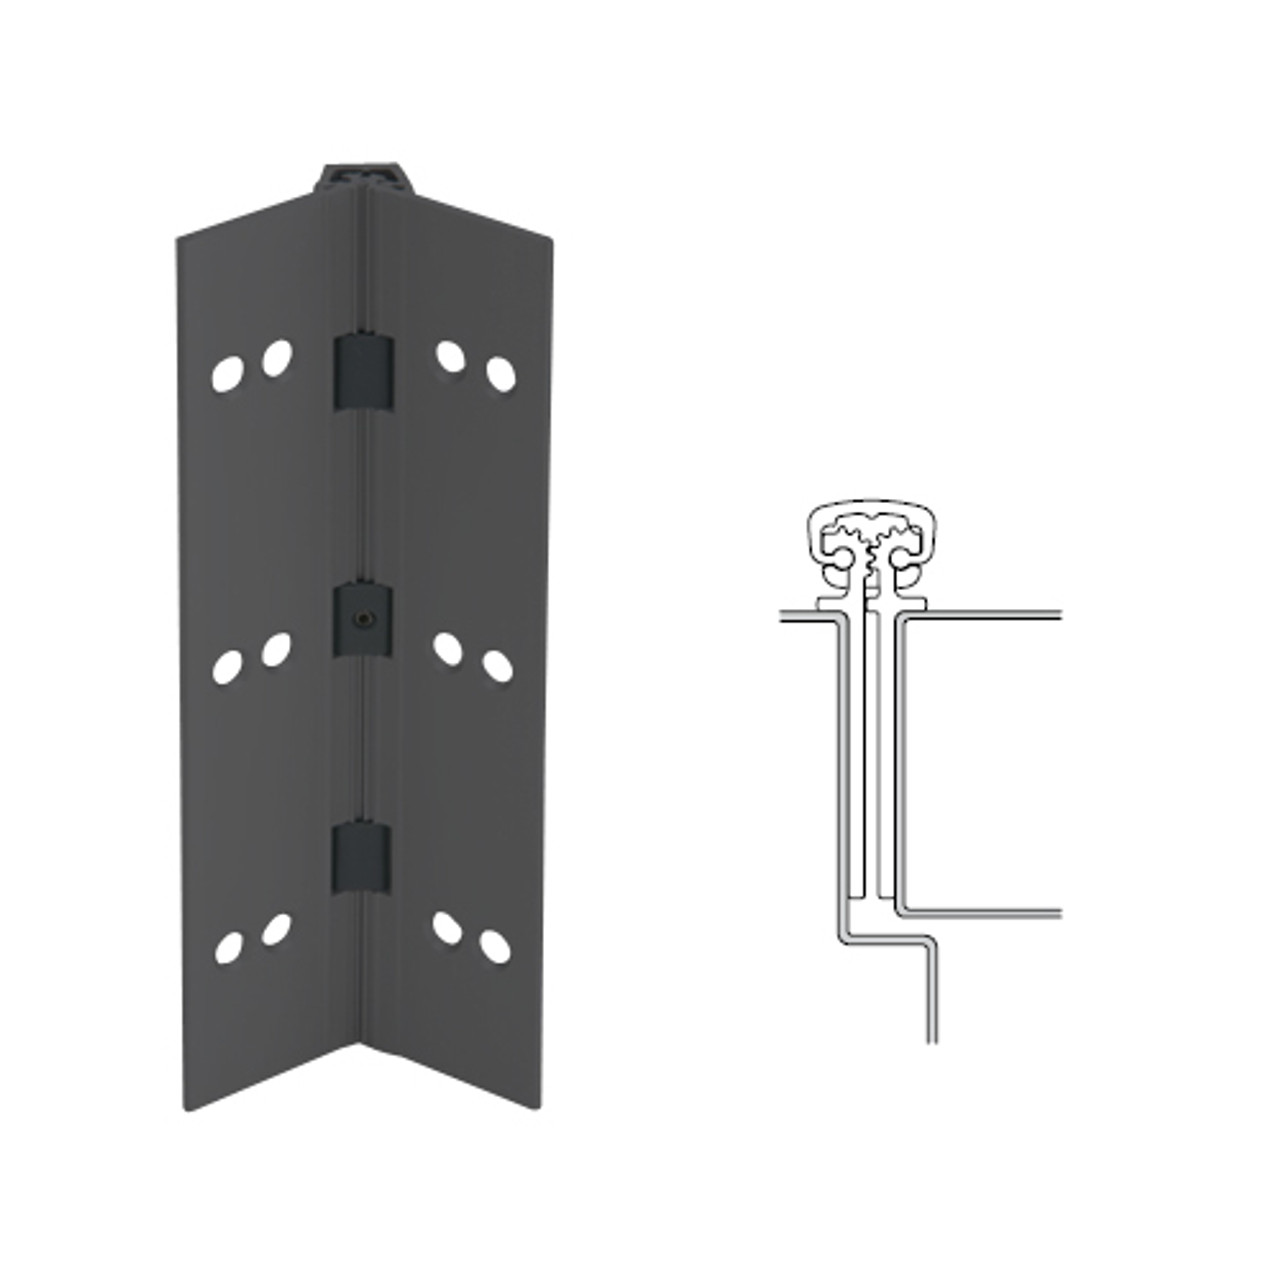 027XY-315AN-120-TFWD IVES Full Mortise Continuous Geared Hinges with Thread Forming Screws in Anodized Black